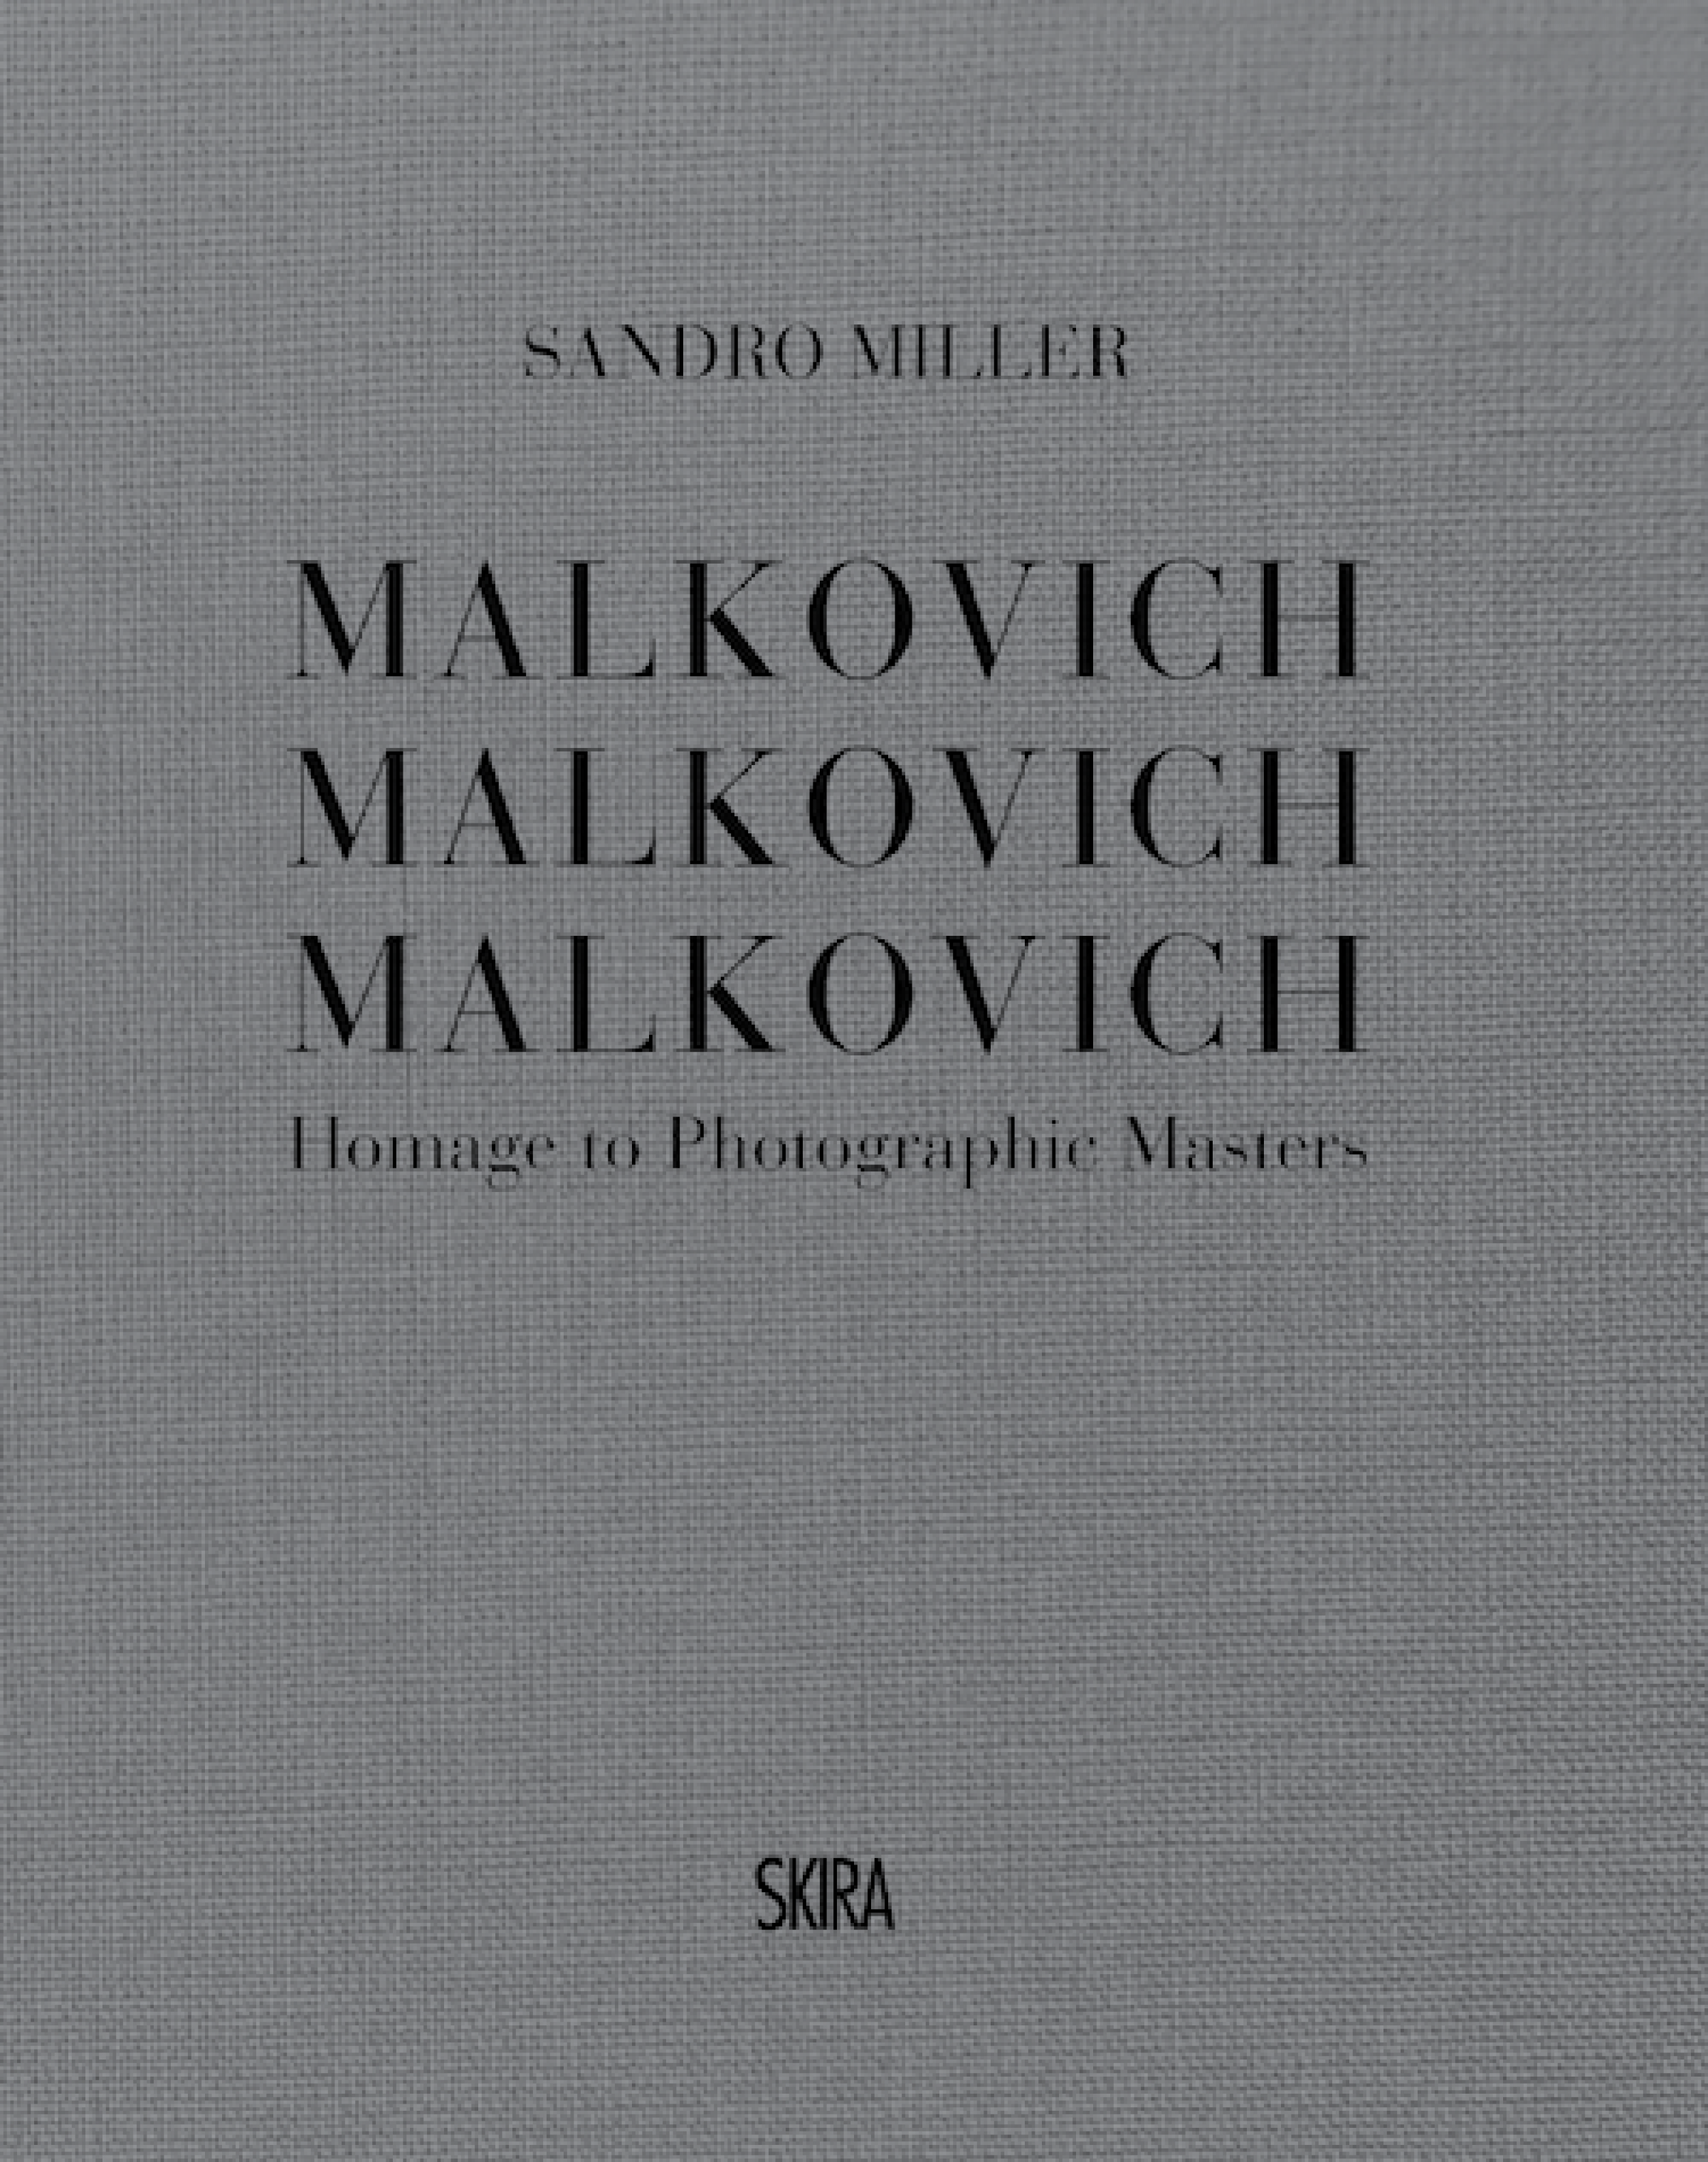 Sandro Miller: Malkovich, Malkovich, Malkovich; Homage to Photographic Masters